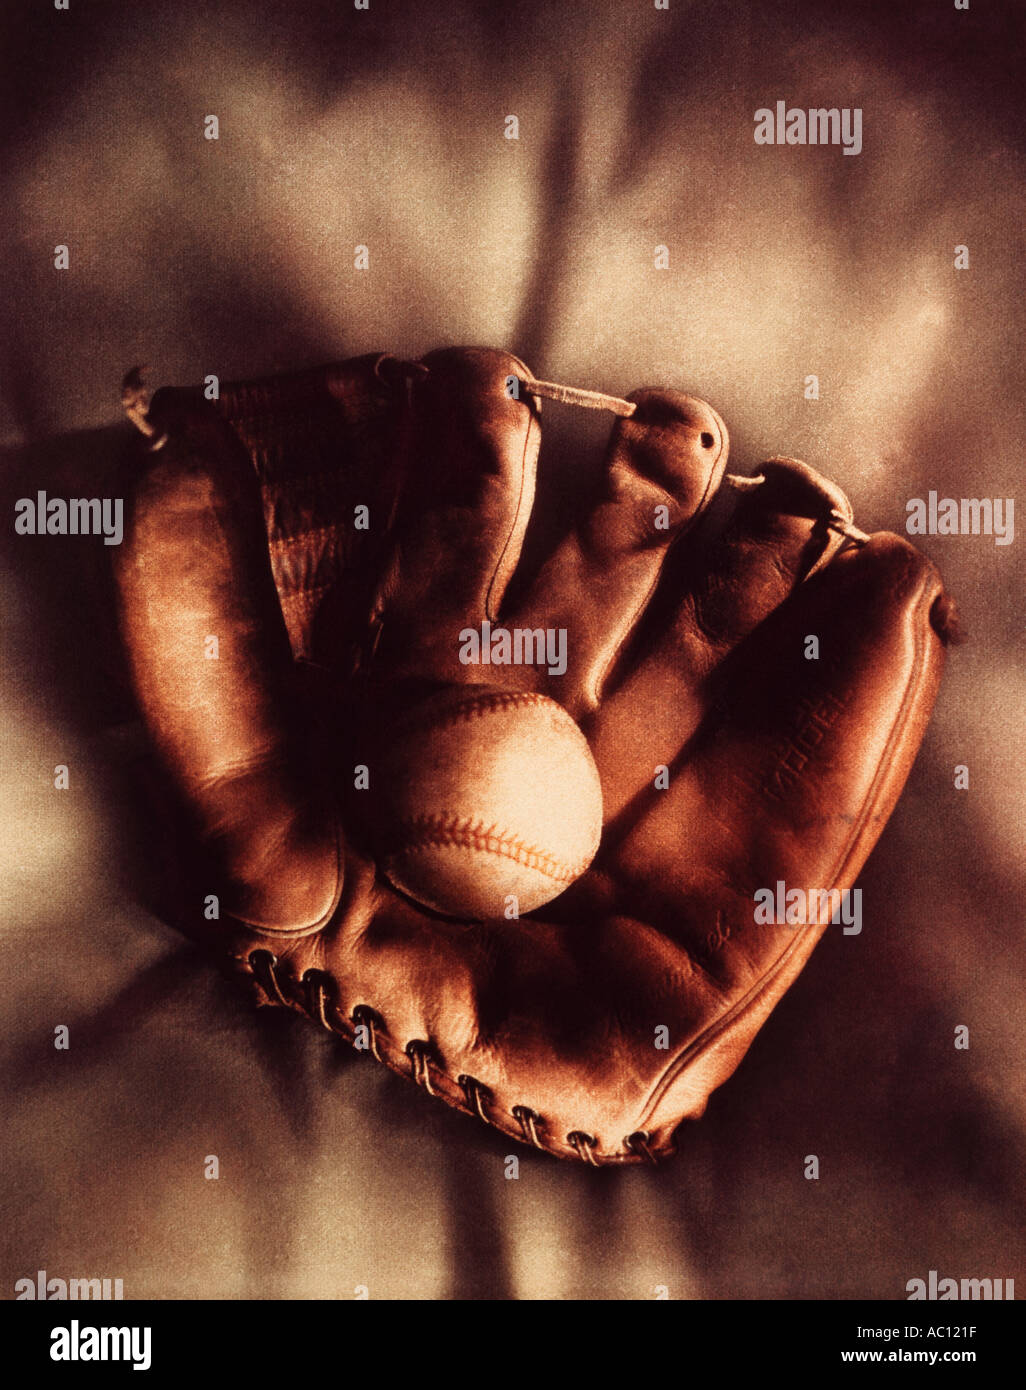 old leather baseball and glove - Stock Image